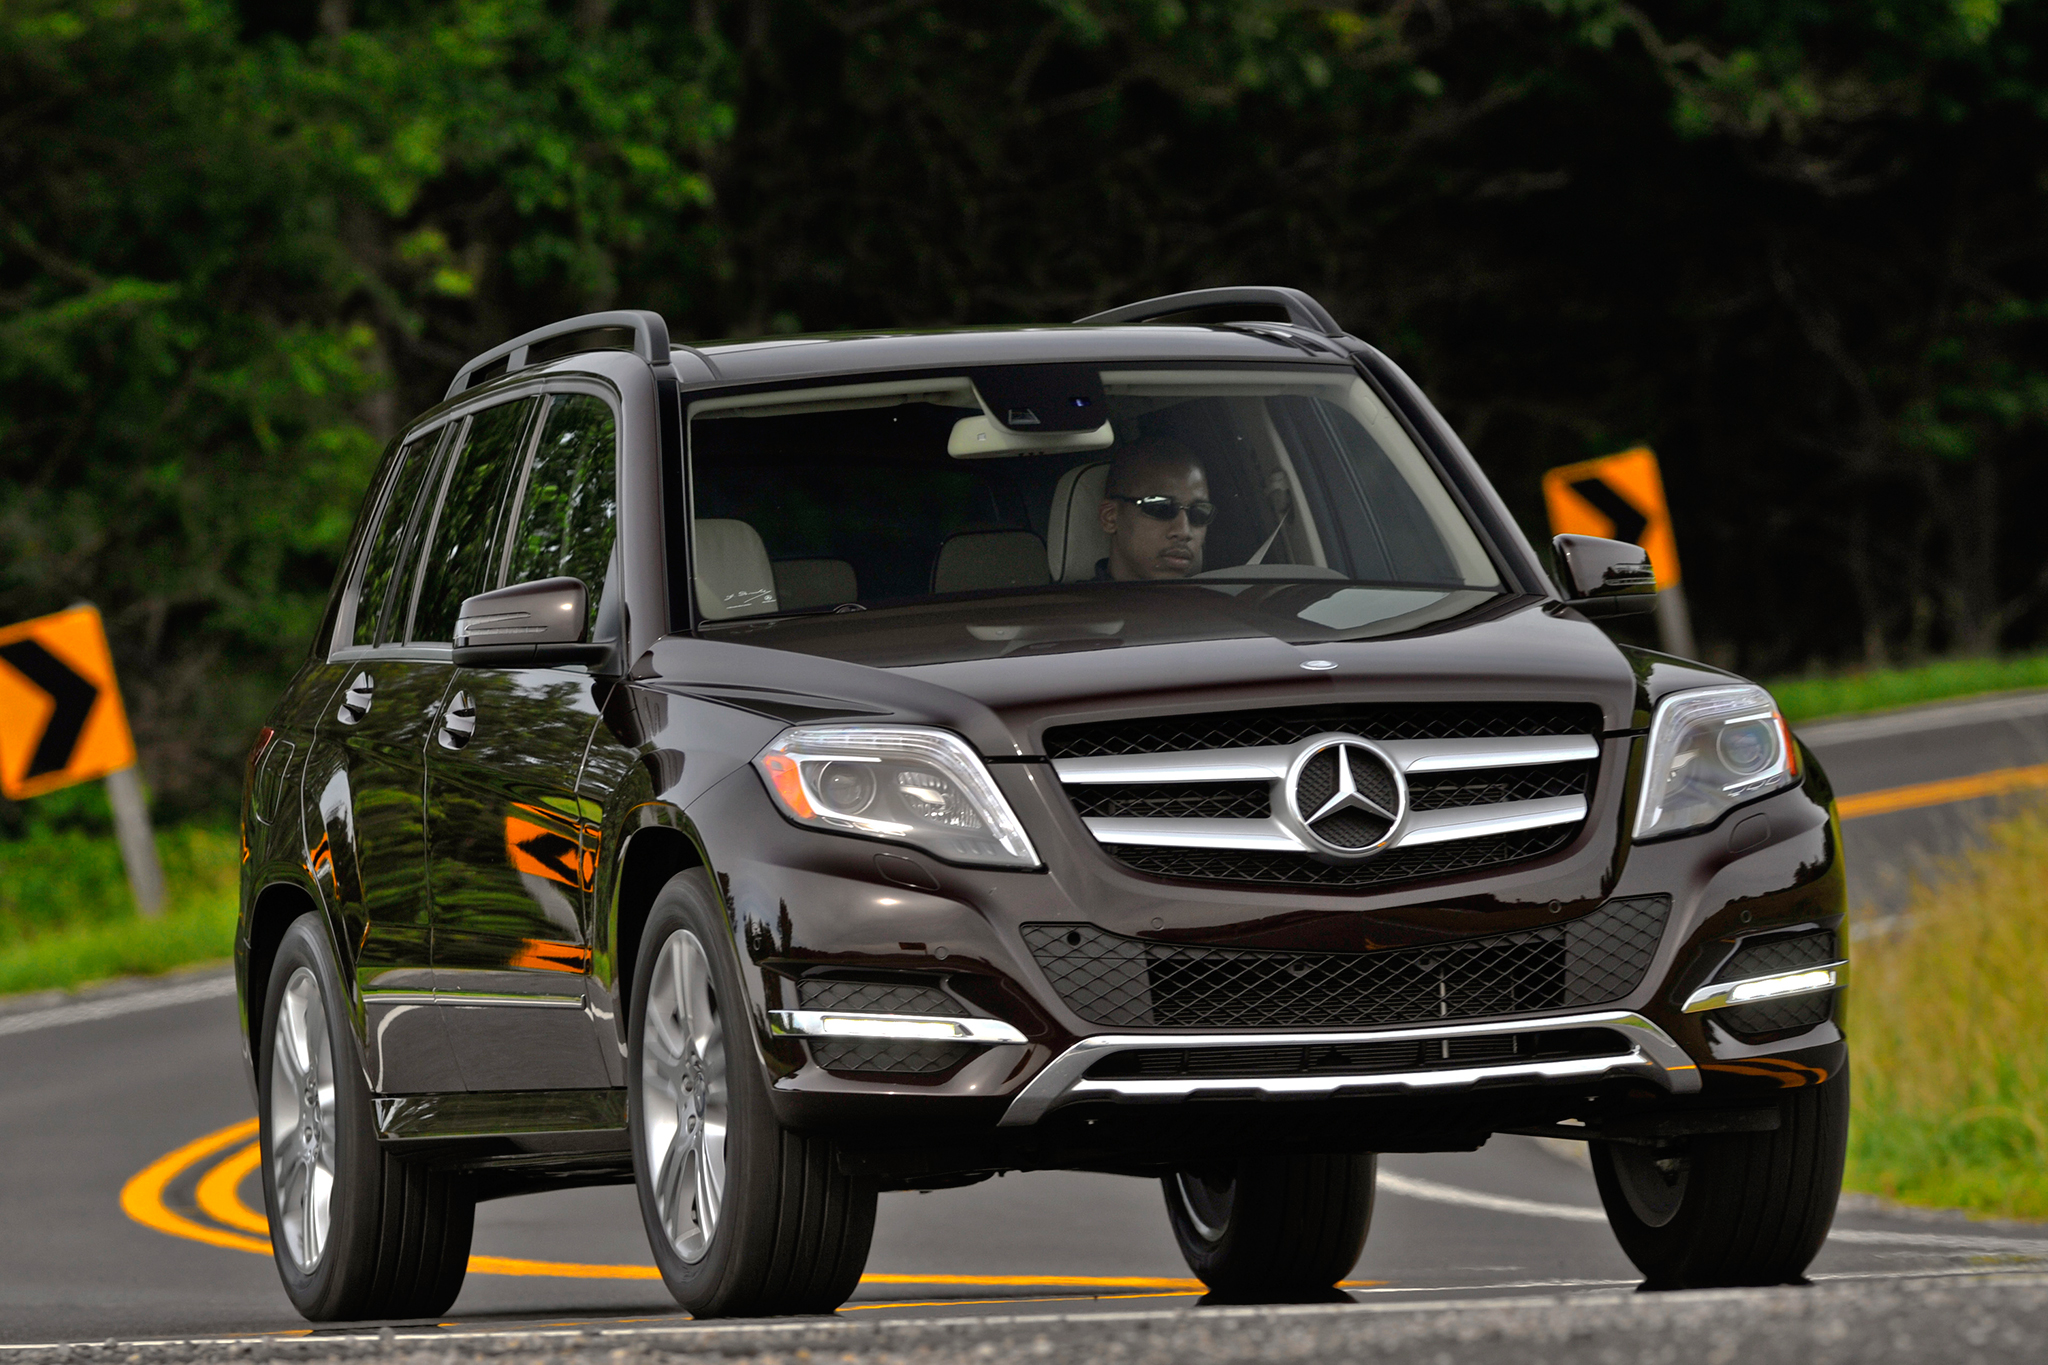 2015 mercedes glk 350 price luxury things for Mercedes benz glk 350